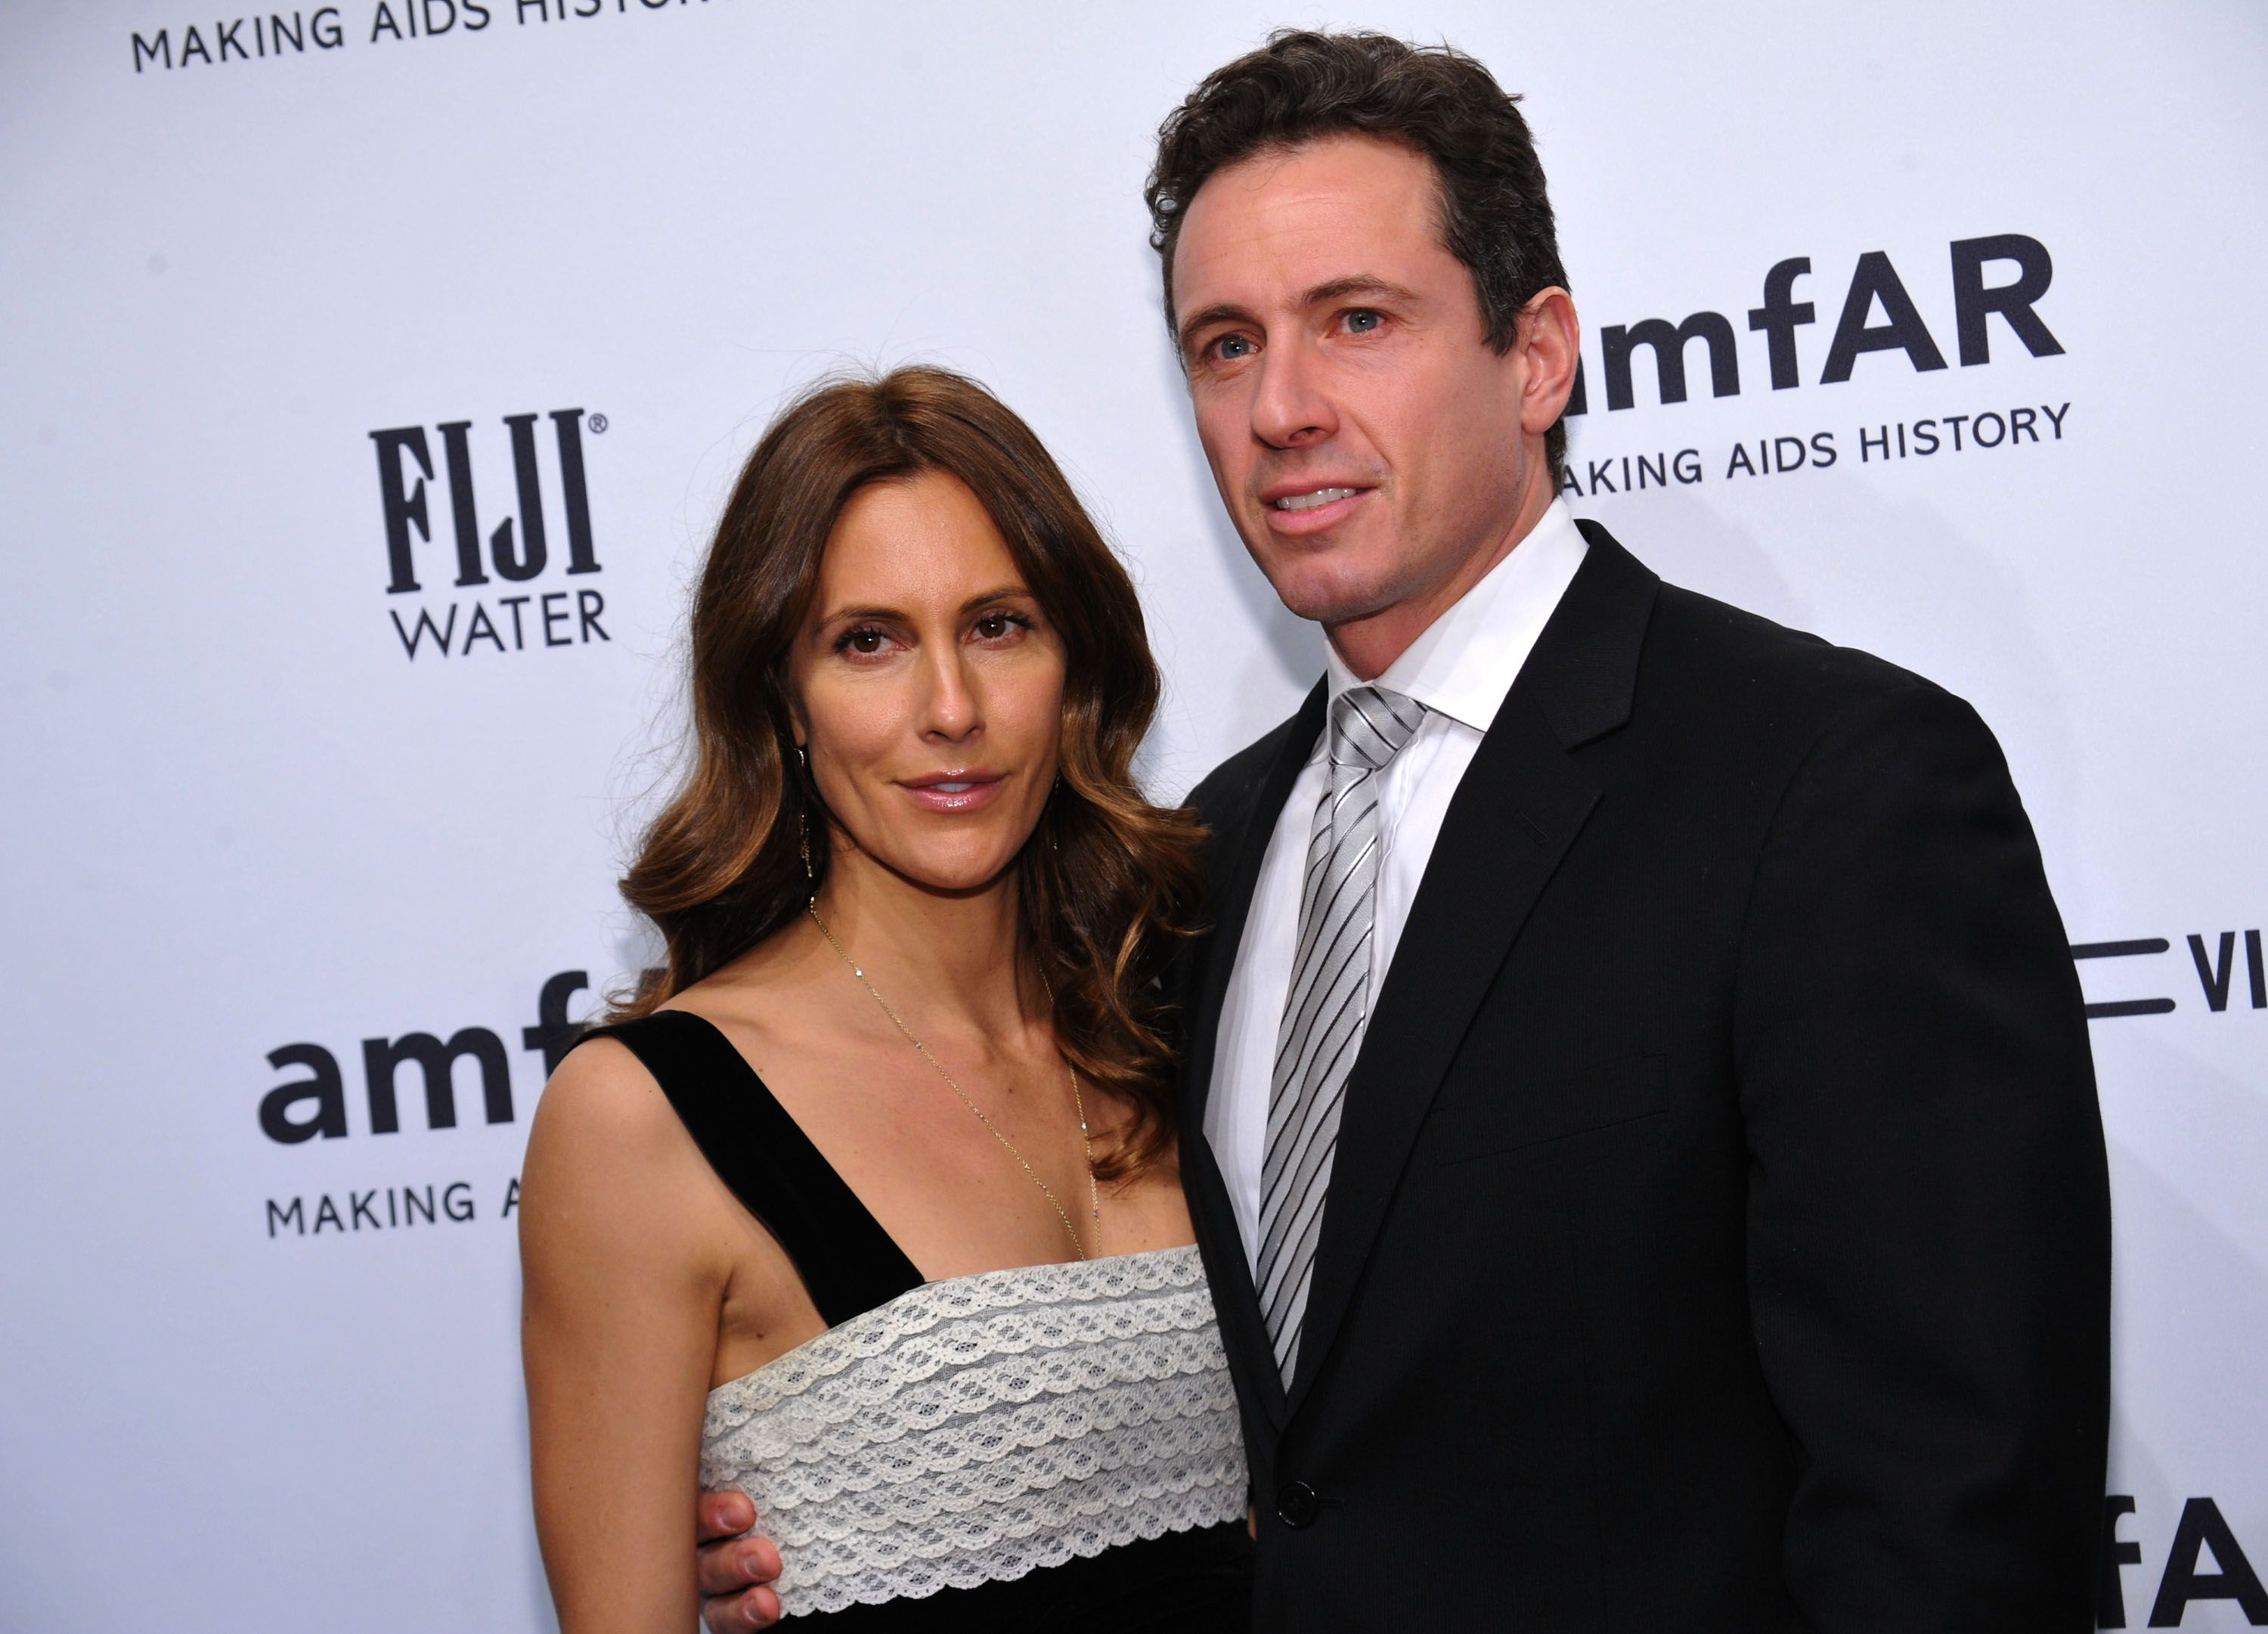 Cristina Cuomo and Chris Cuomo at the amfAR New York Gala to kick off Fall 2013 Fashion Week at Cipriani Wall Street on February 6, 2013 | Photo: Getty Images